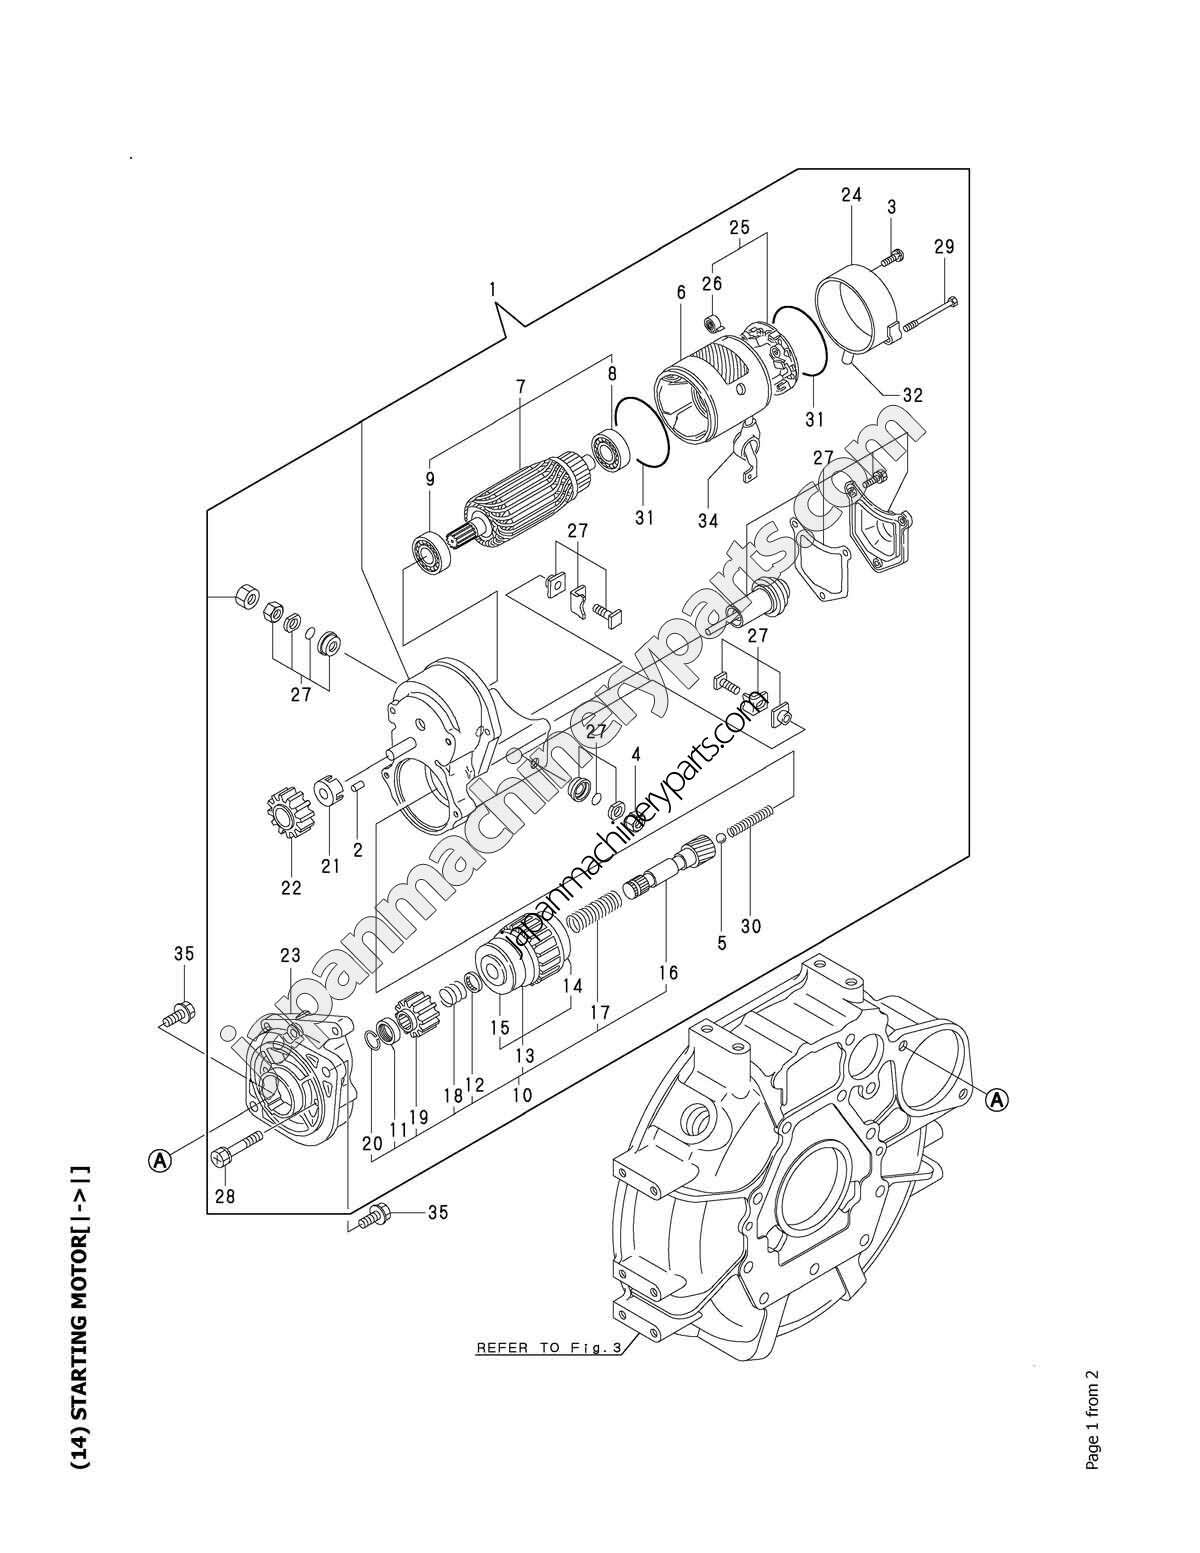 wiring diagram for ford 1700 tractor